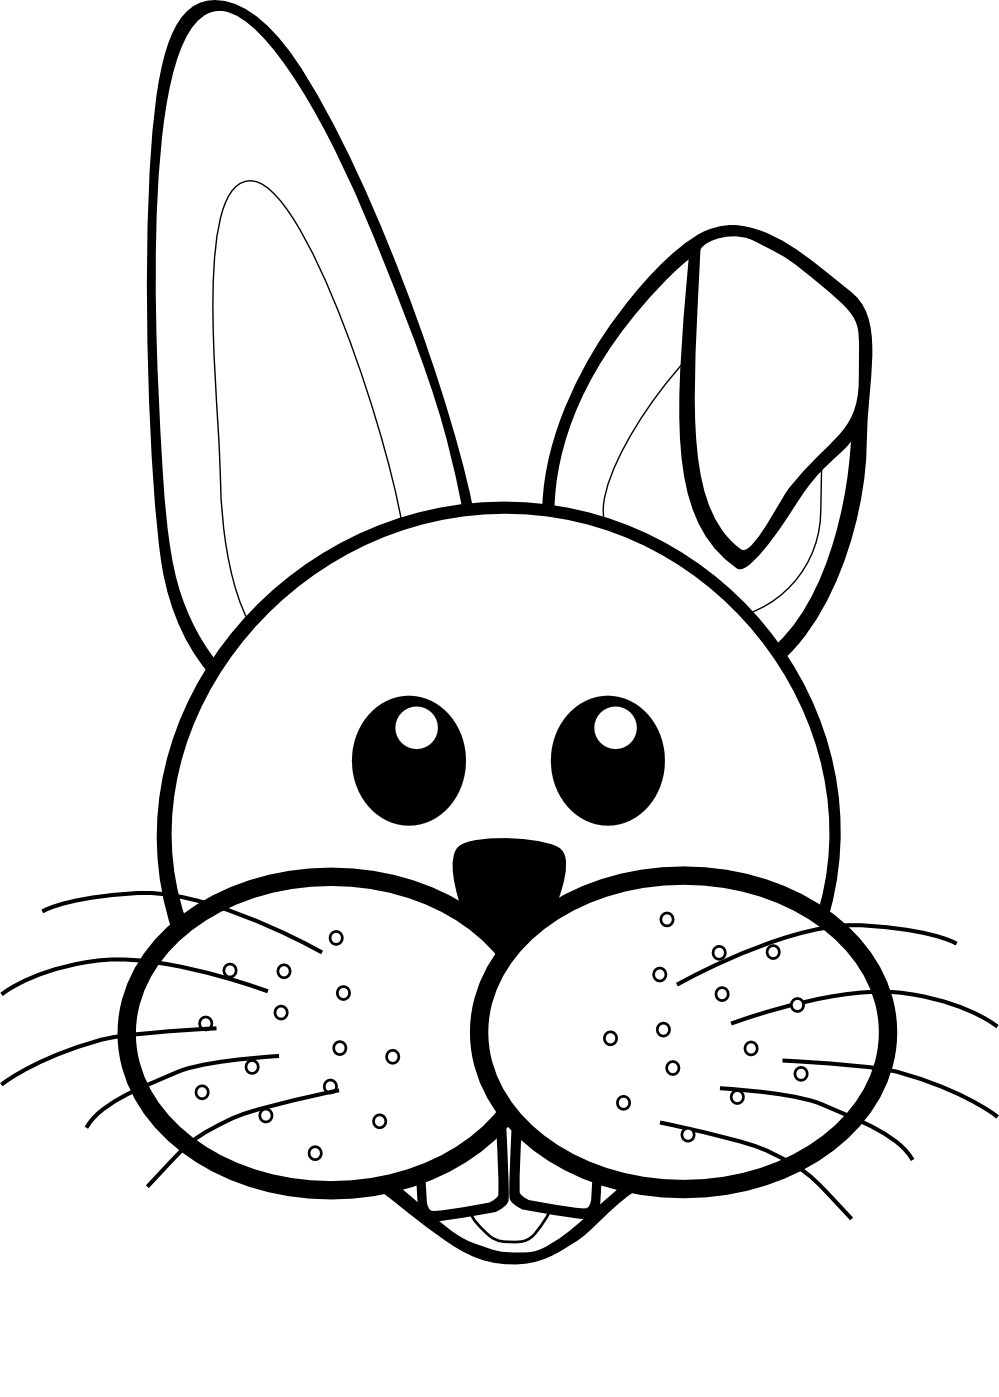 Bunny Clipart Black And White | Free download best Bunny ...